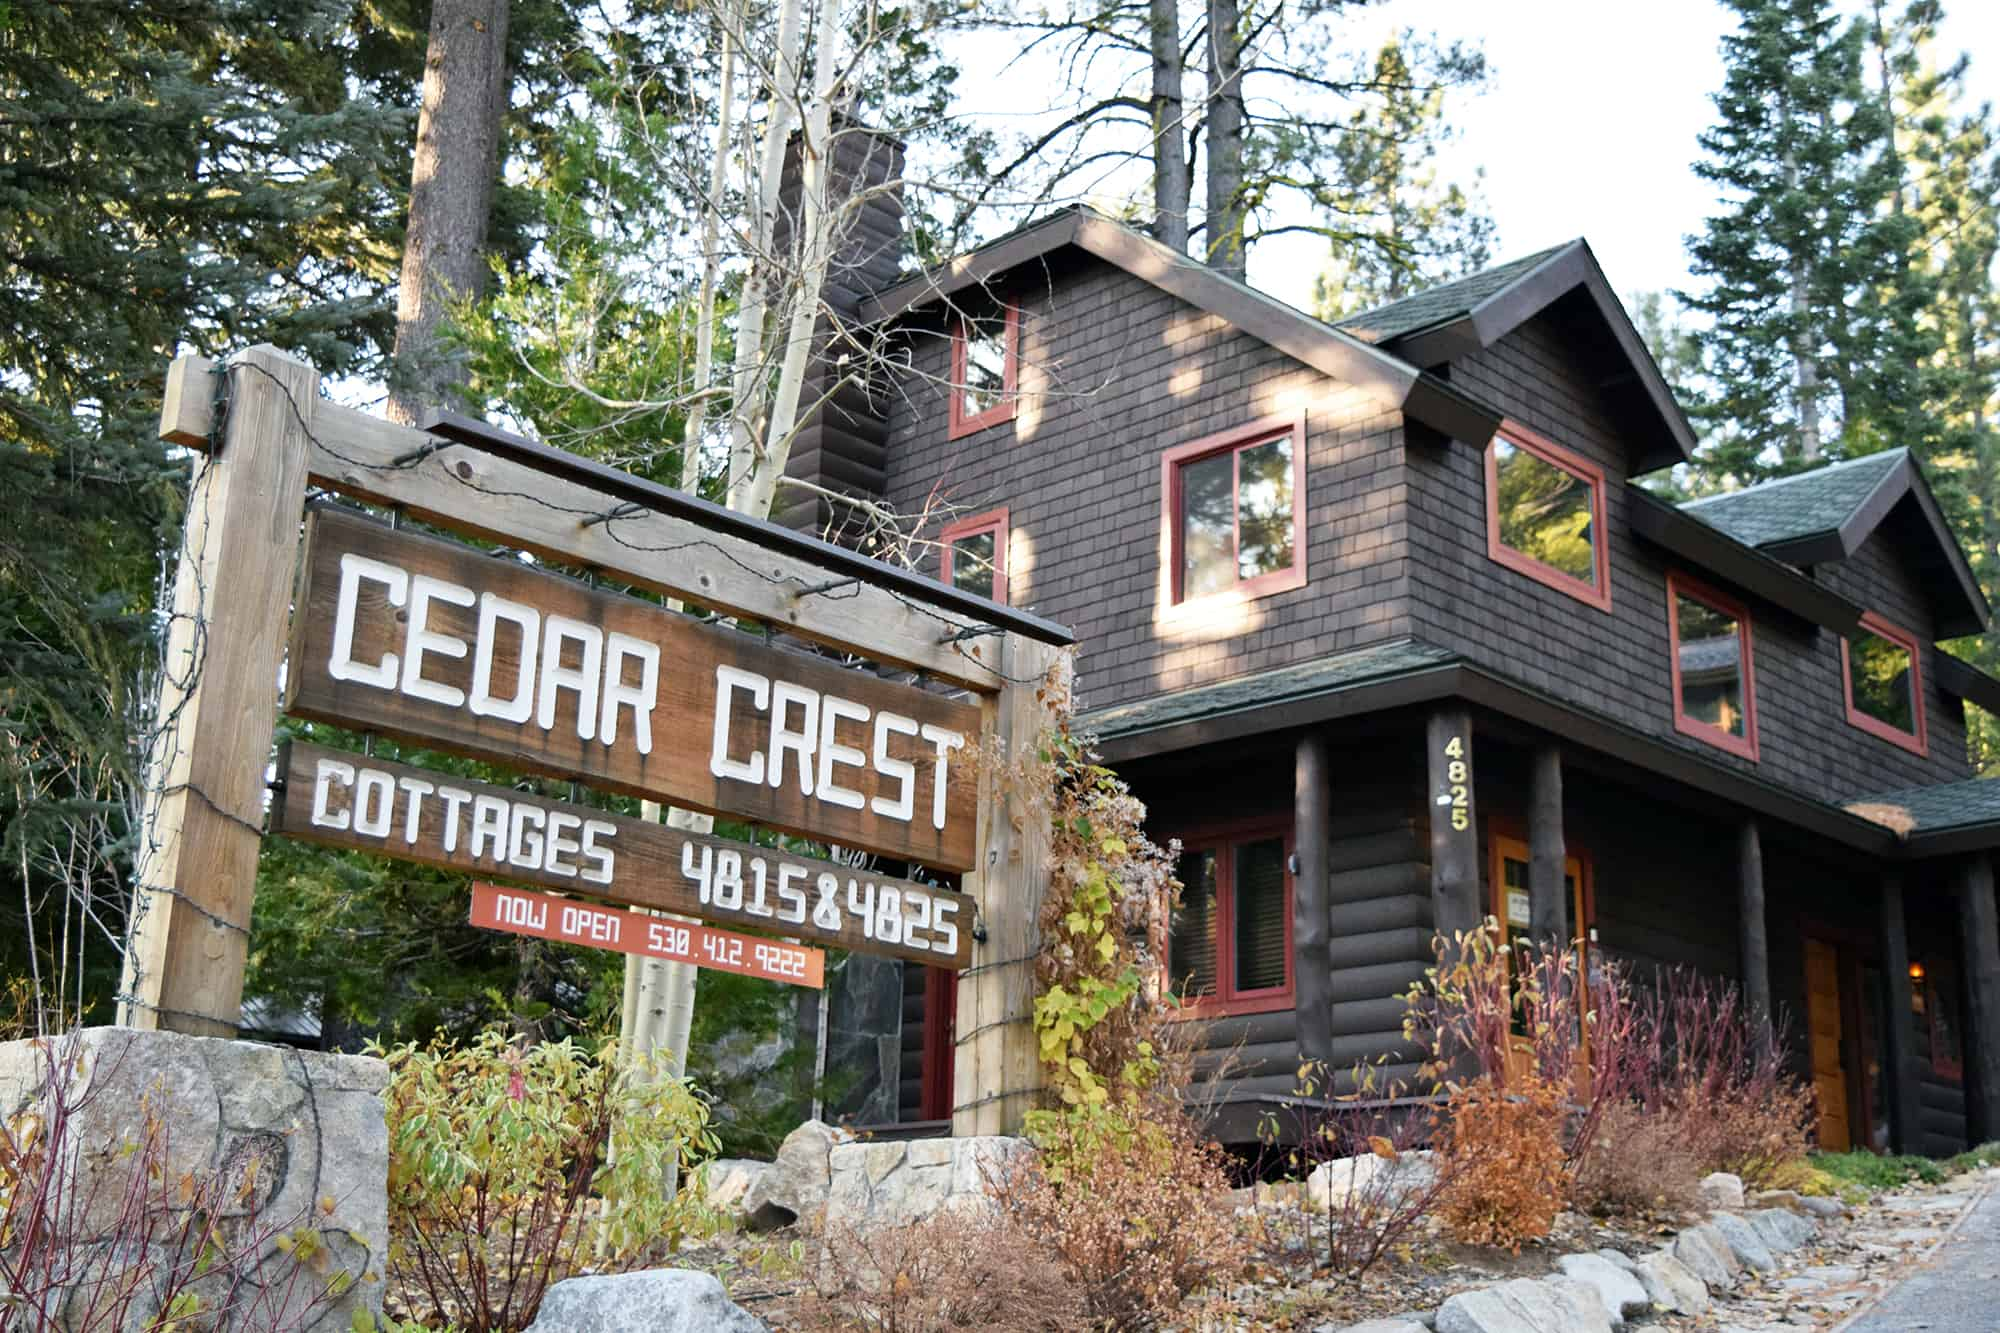 Cedar Crest Cottages